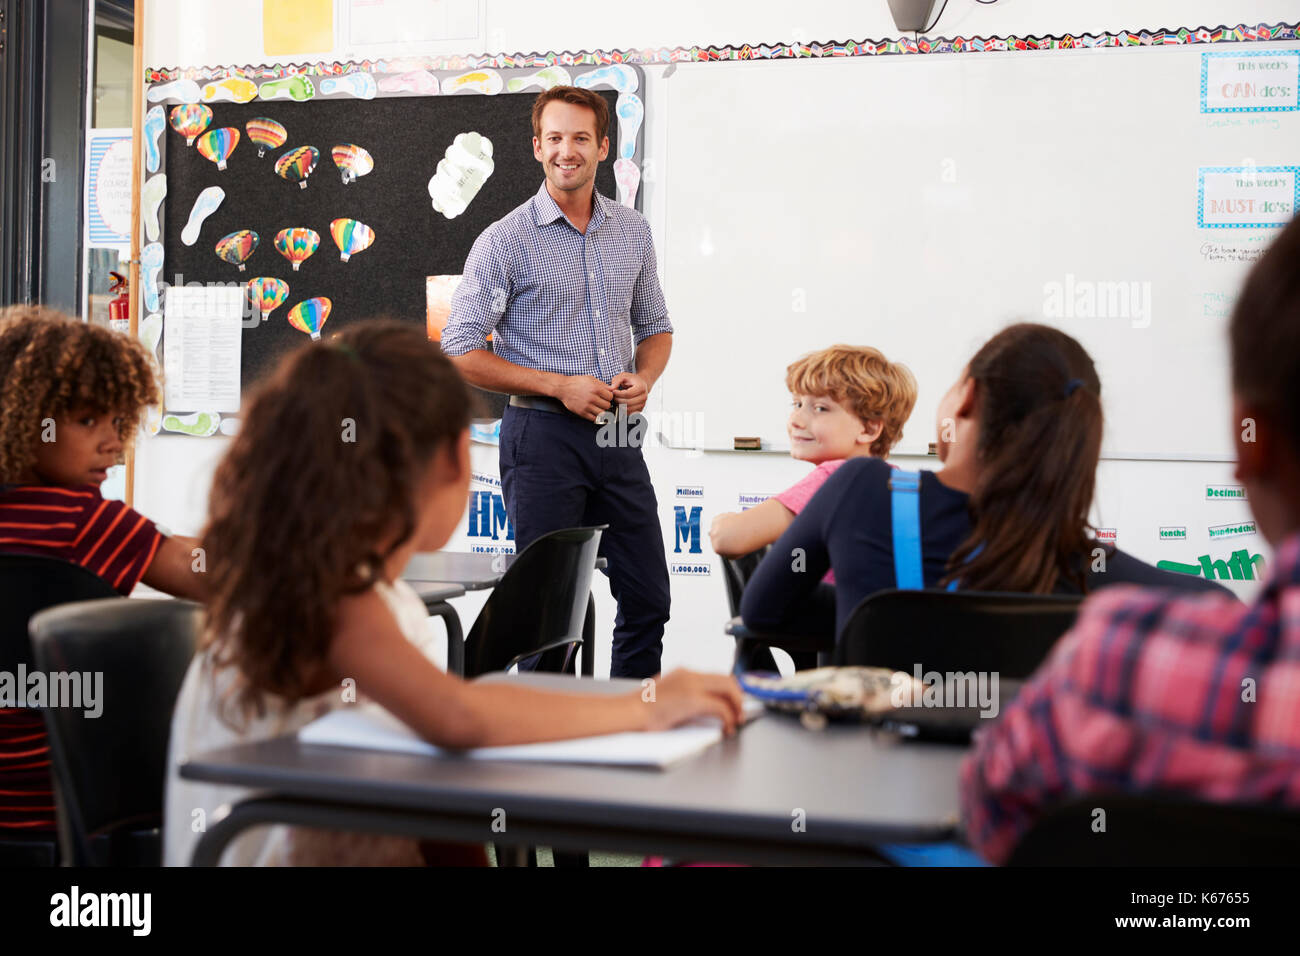 Smiling teacher at front of elementary school class - Stock Image